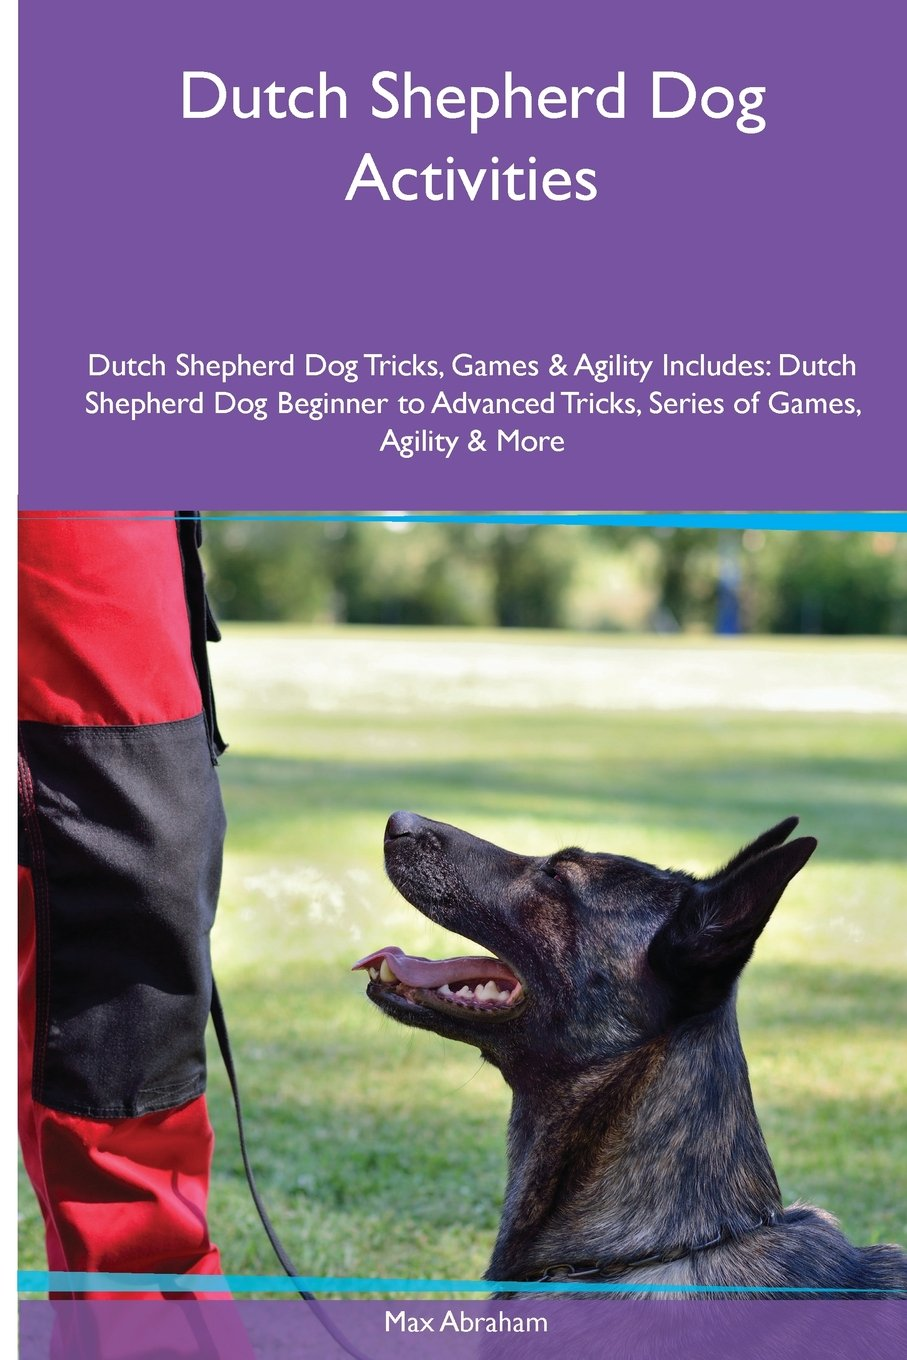 Read Online Dutch Shepherd Dog  Activities Dutch Shepherd Dog Tricks, Games & Agility. Includes: Dutch Shepherd Dog Beginner to Advanced Tricks, Series of Games, Agility and More PDF